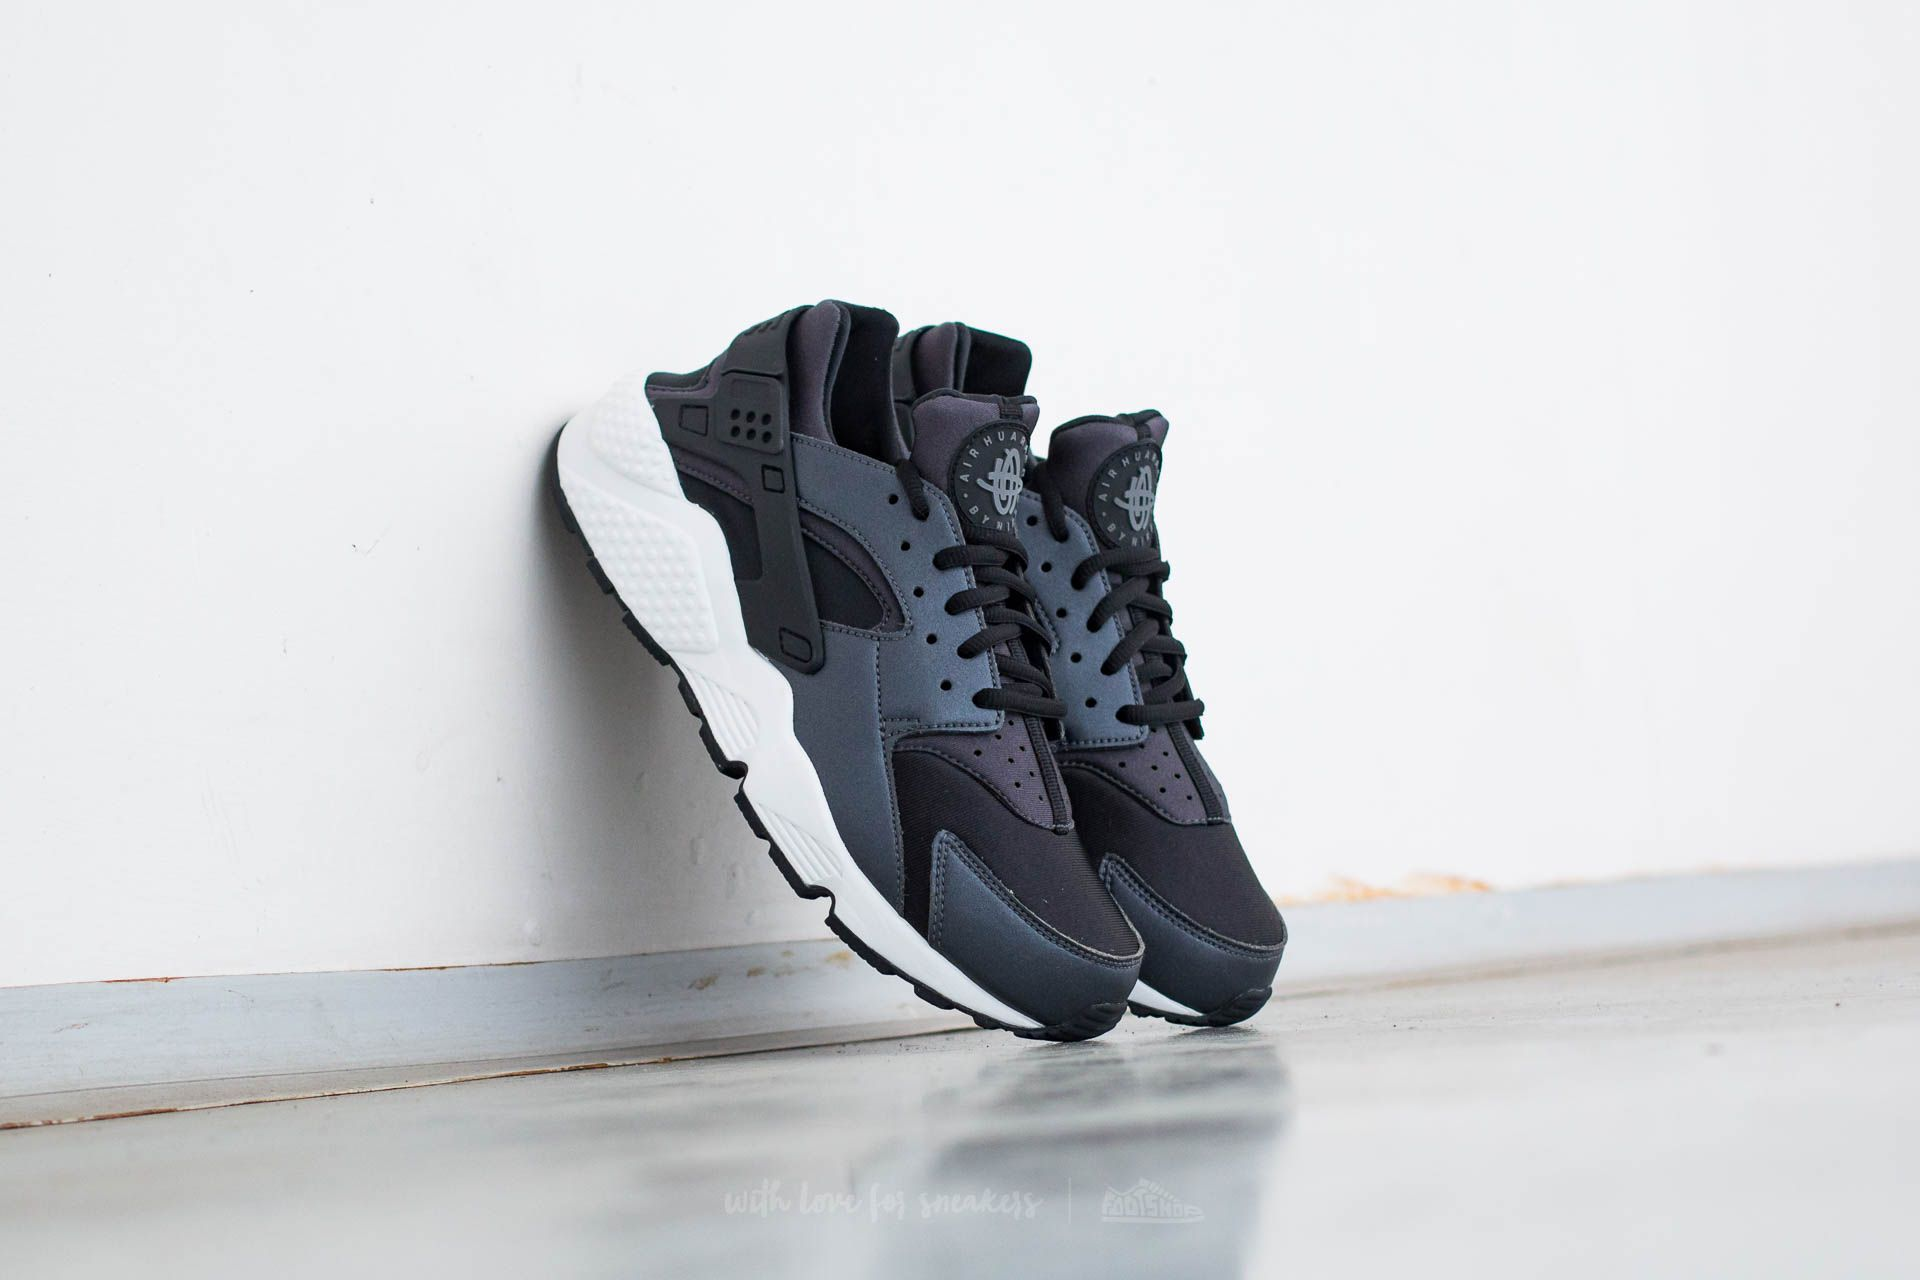 official photos ef90f e5777 Nike Wmns Air Huarache Run SE. Metallic Hematite  Black-Dark Grey